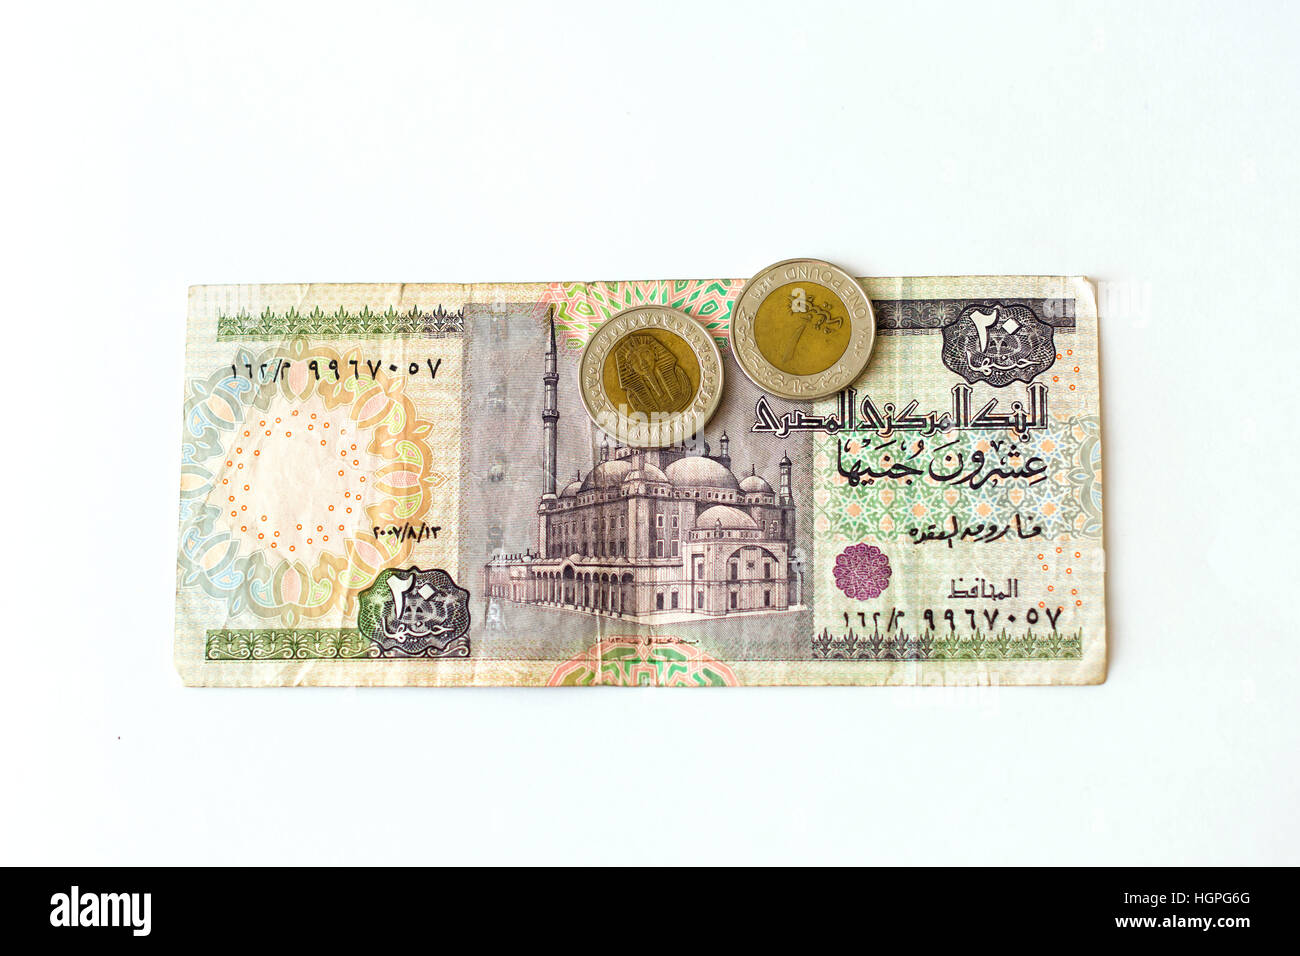 20 egyptian pounds old banknote denominations of twenty egp with 20 egyptian pounds old banknote denominations of twenty egp with mosque coin 1 pound with sphinx symbol of egypt currency to wealth and investment buycottarizona Choice Image